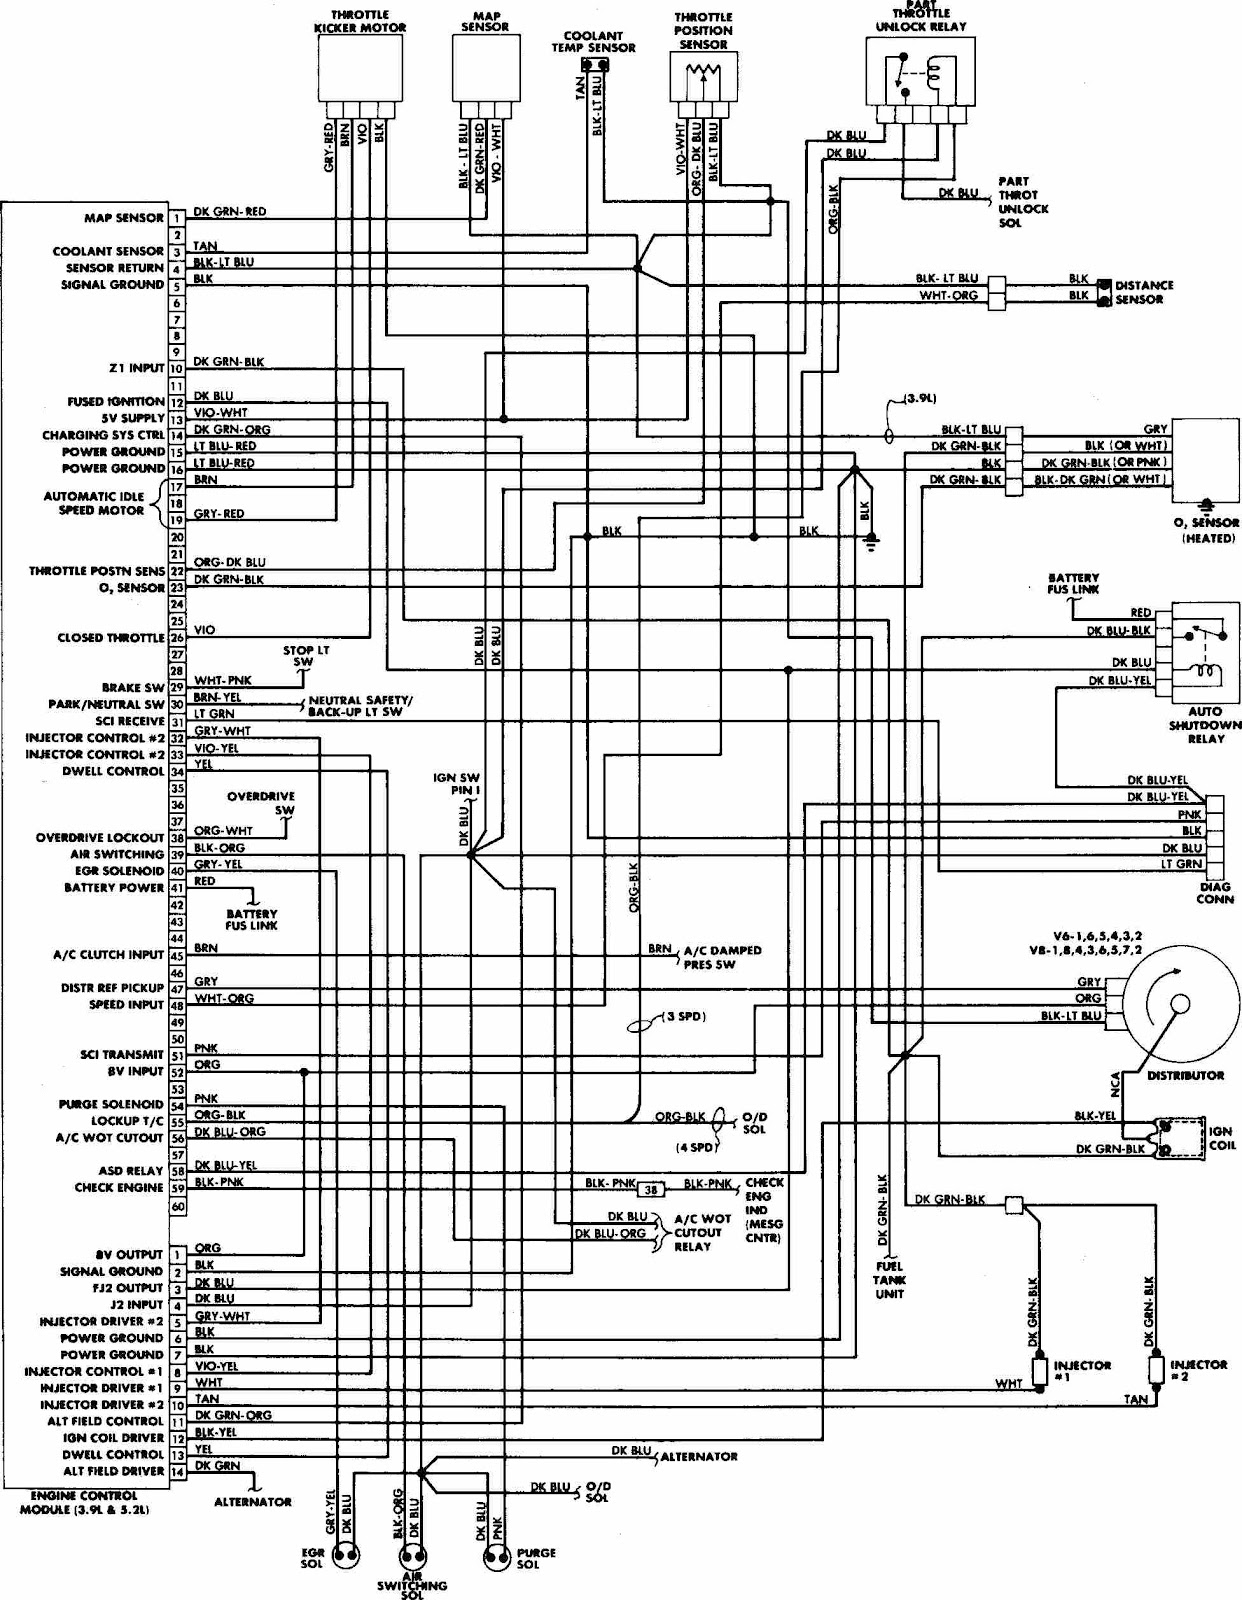 Hemi 57 Ignition Wire Diagram Opinions About Wiring 5 7 Engine Parts Schematic 88 Ford Truck Harness U2022 Rh Voterid Co Cylinder Numbers